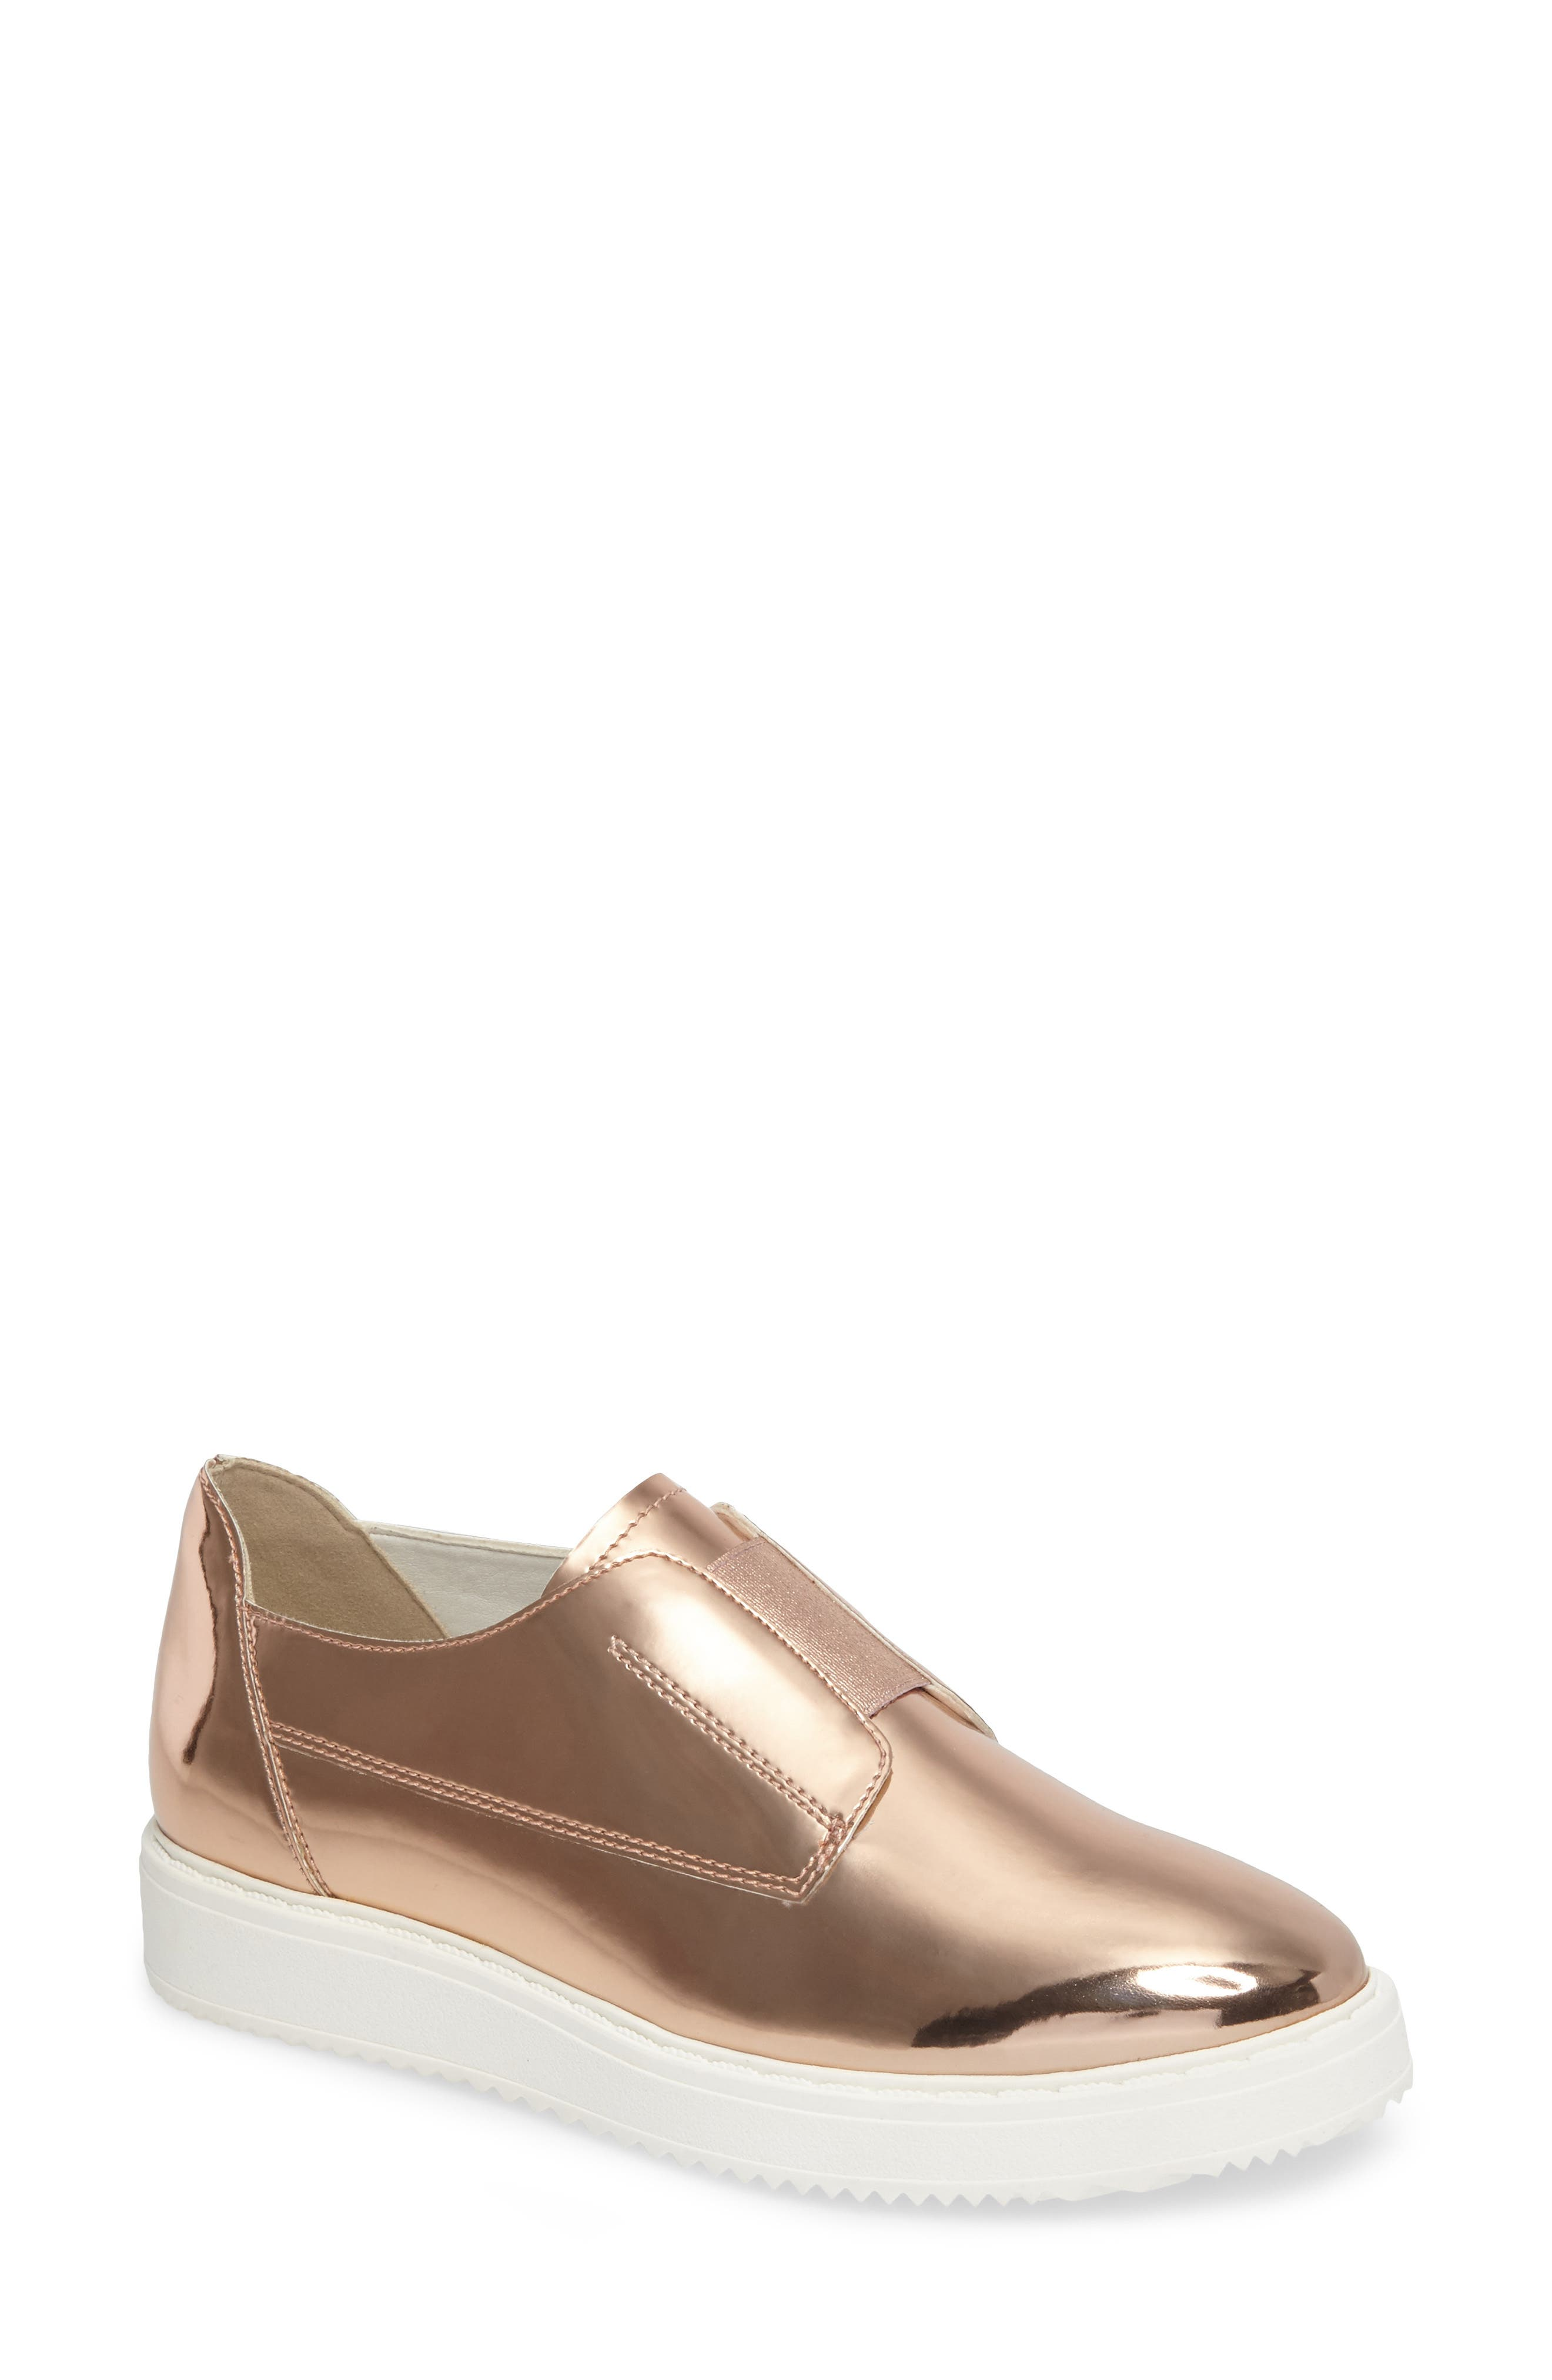 Trist Slip-On Metallic Sneaker,                         Main,                         color, Rosegold Metallic Faux Leather